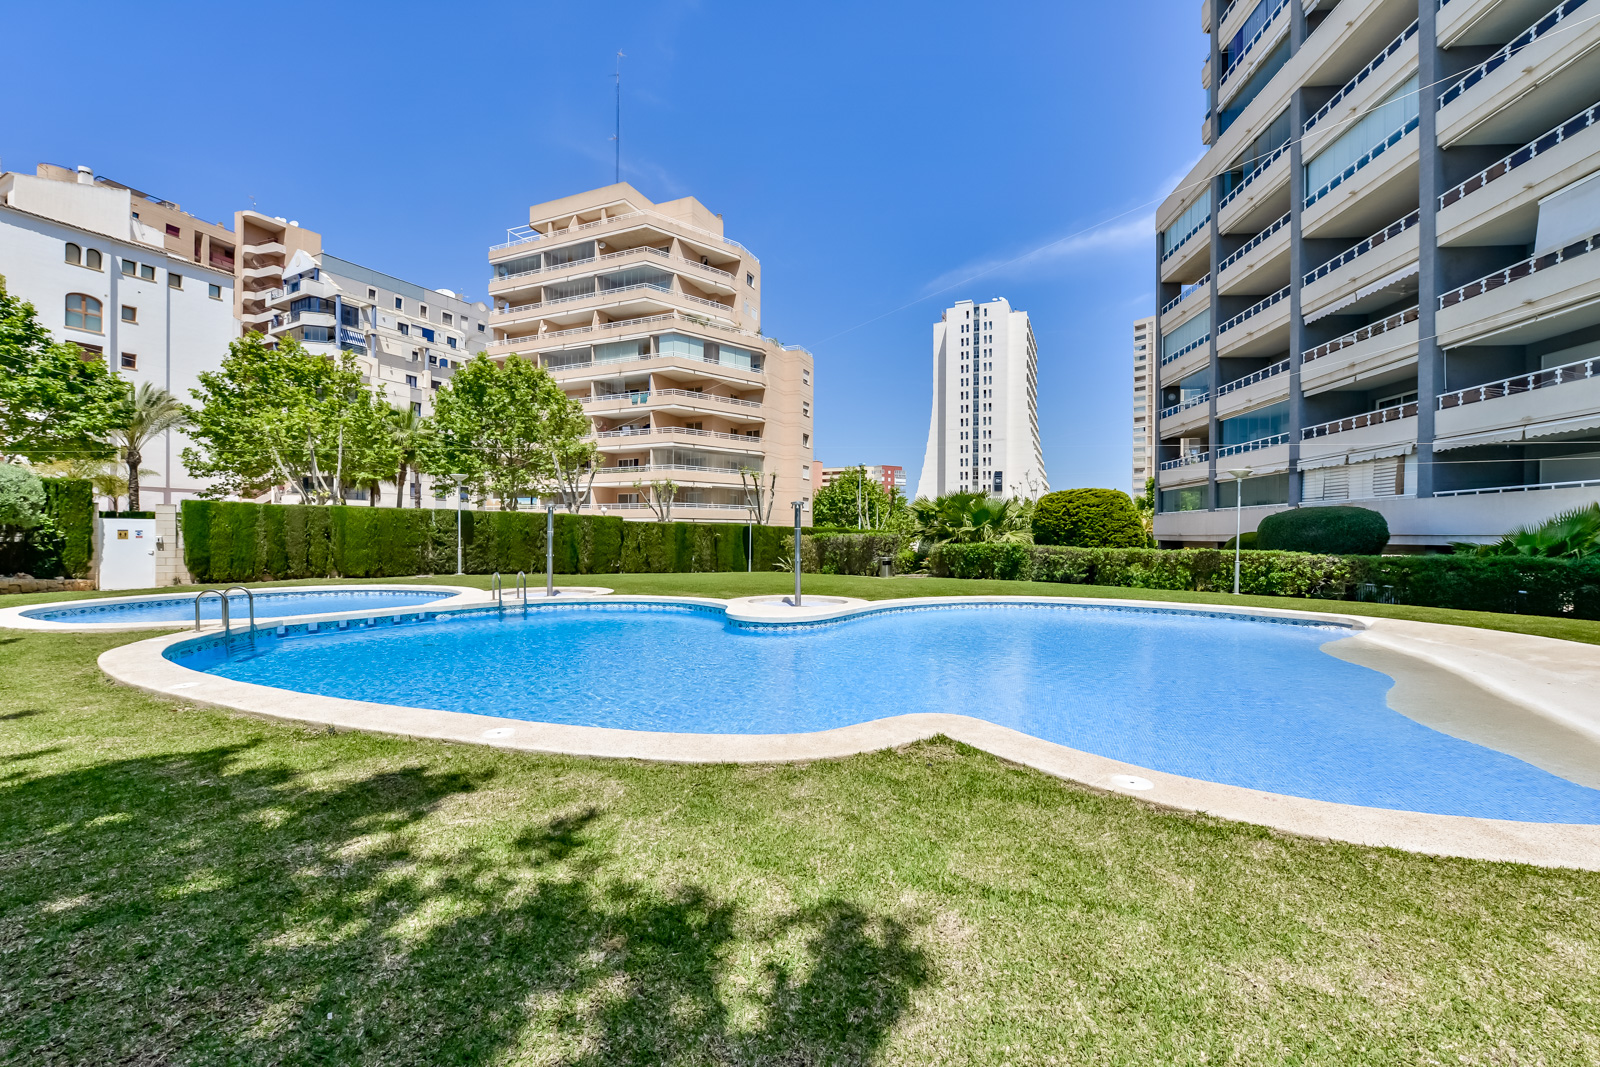 Apartamento Apolo XVIII 57, Apartment  with communal pool in Calpe, on the Costa Blanca, Spain for 6 persons.....